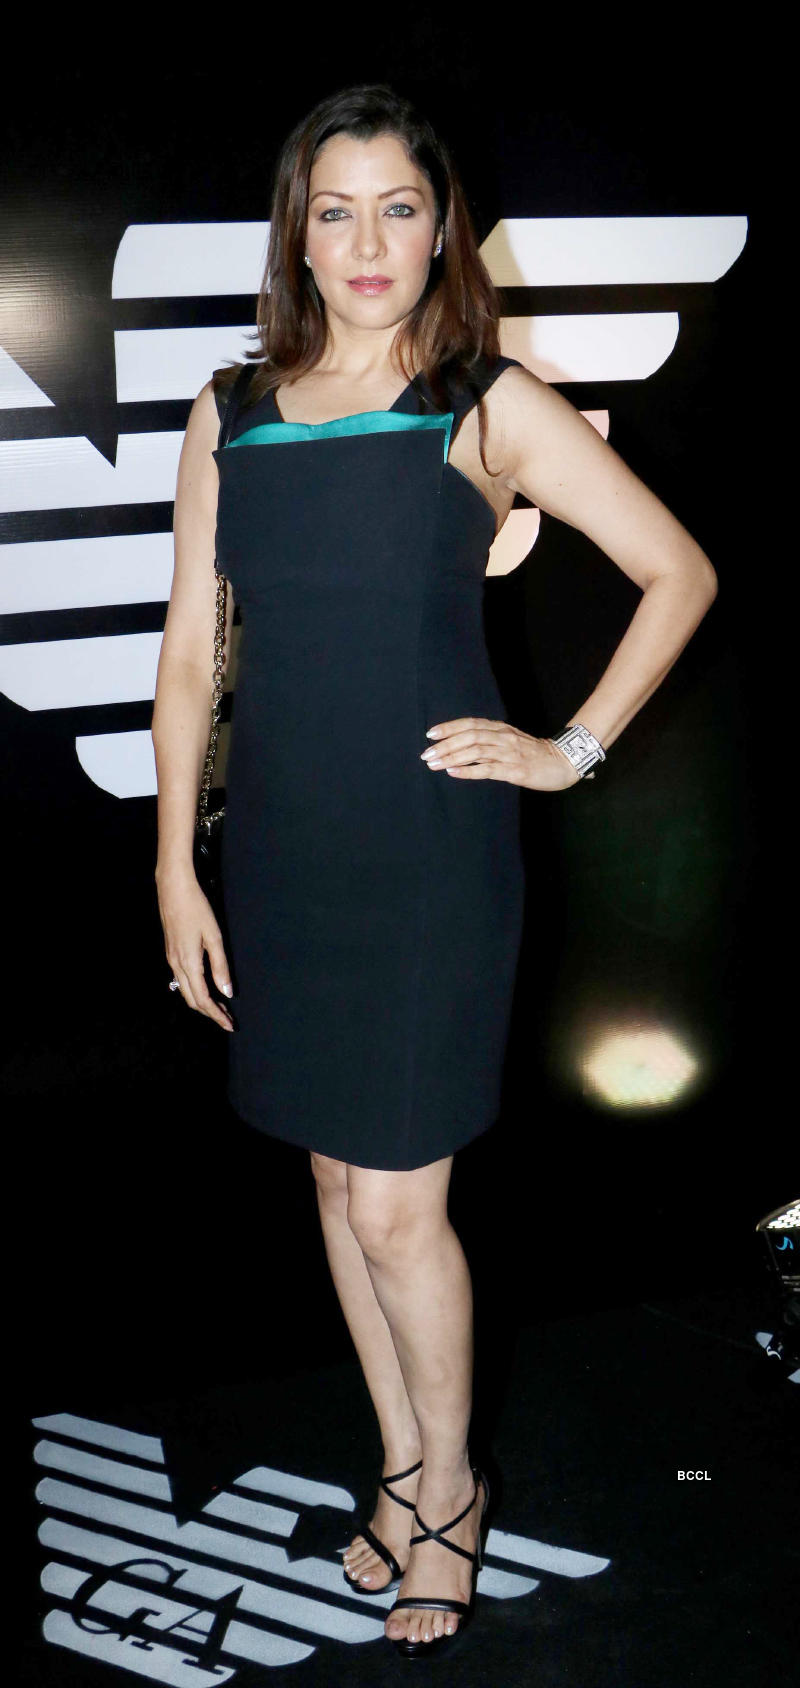 Arjun Kapoor, Kubbra Sait and other celebs grace a launch event